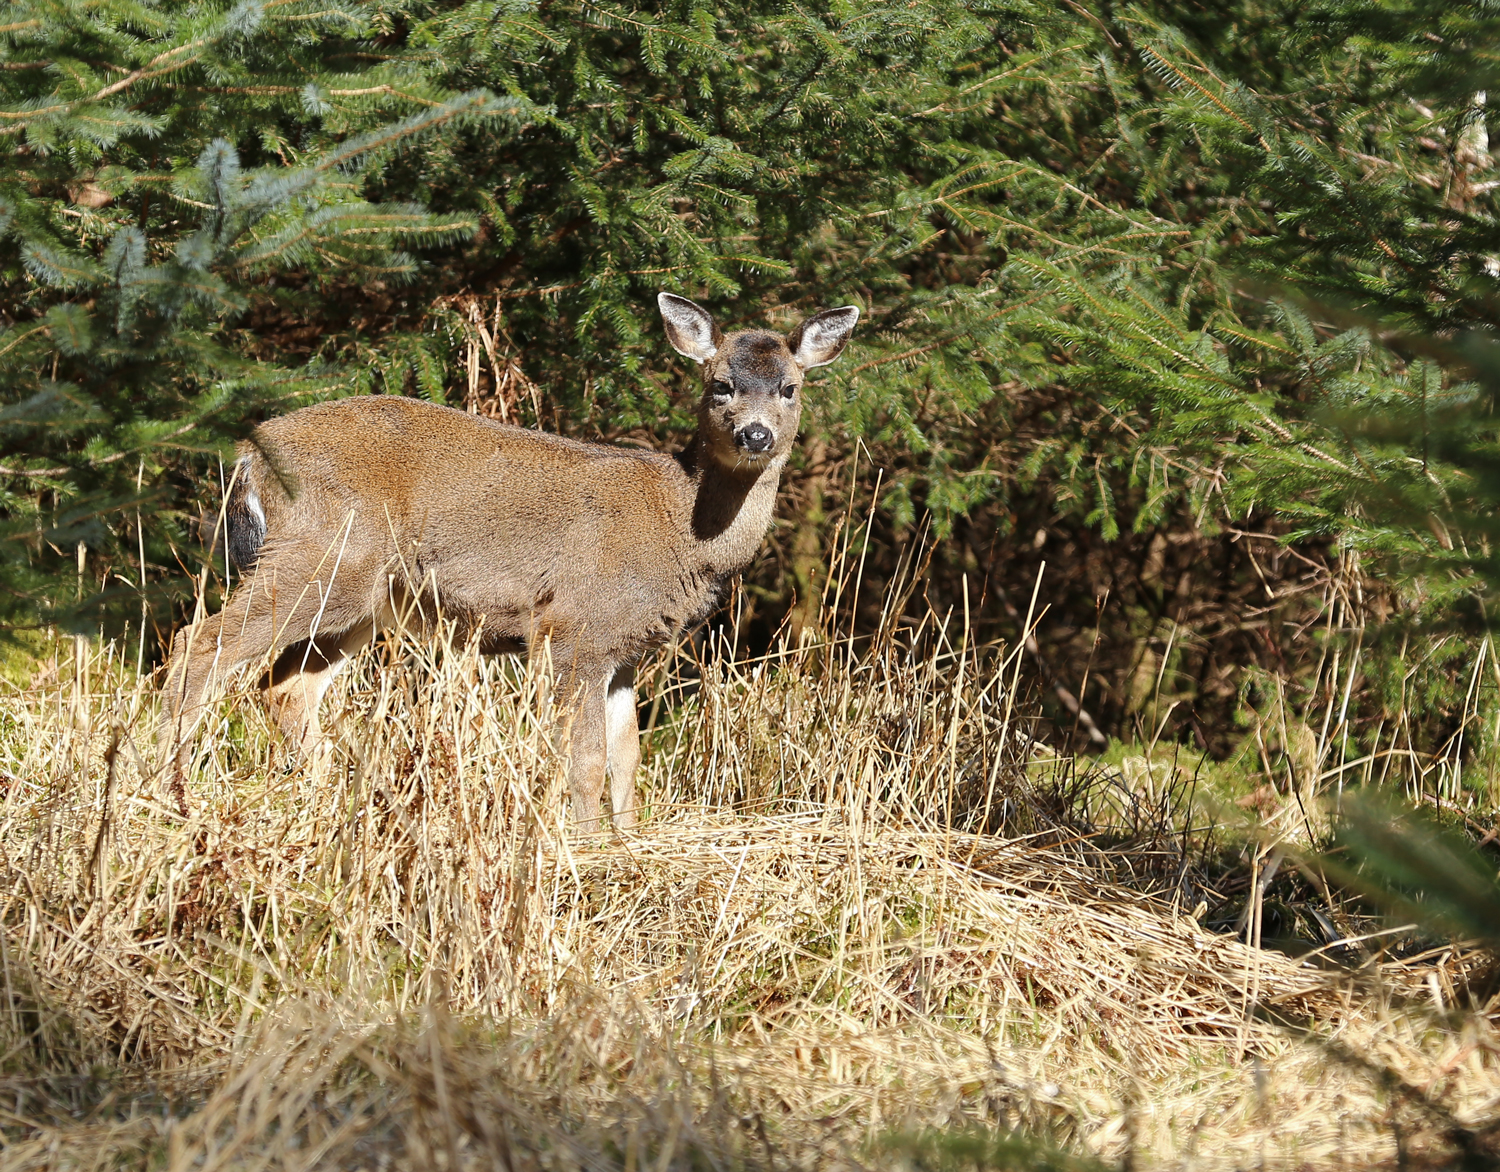 Sitka blacktail yearling. What a baby face!